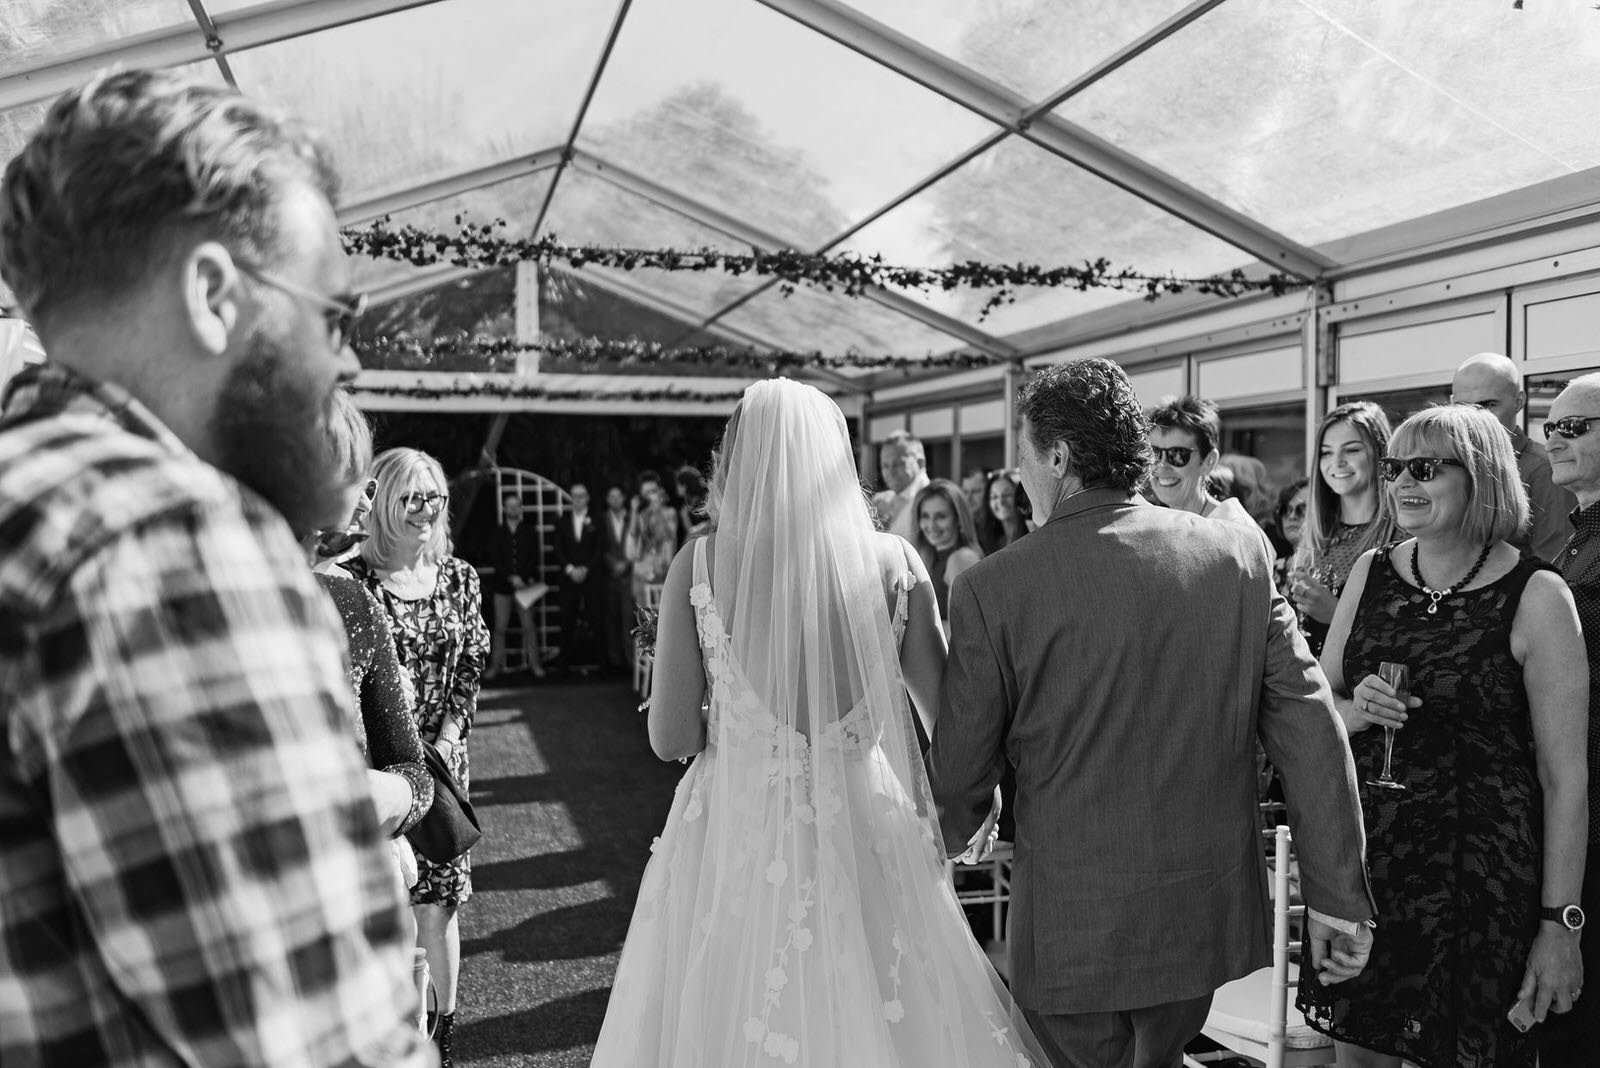 newfound-at-glendowie-auckland-wedding-photographers-093